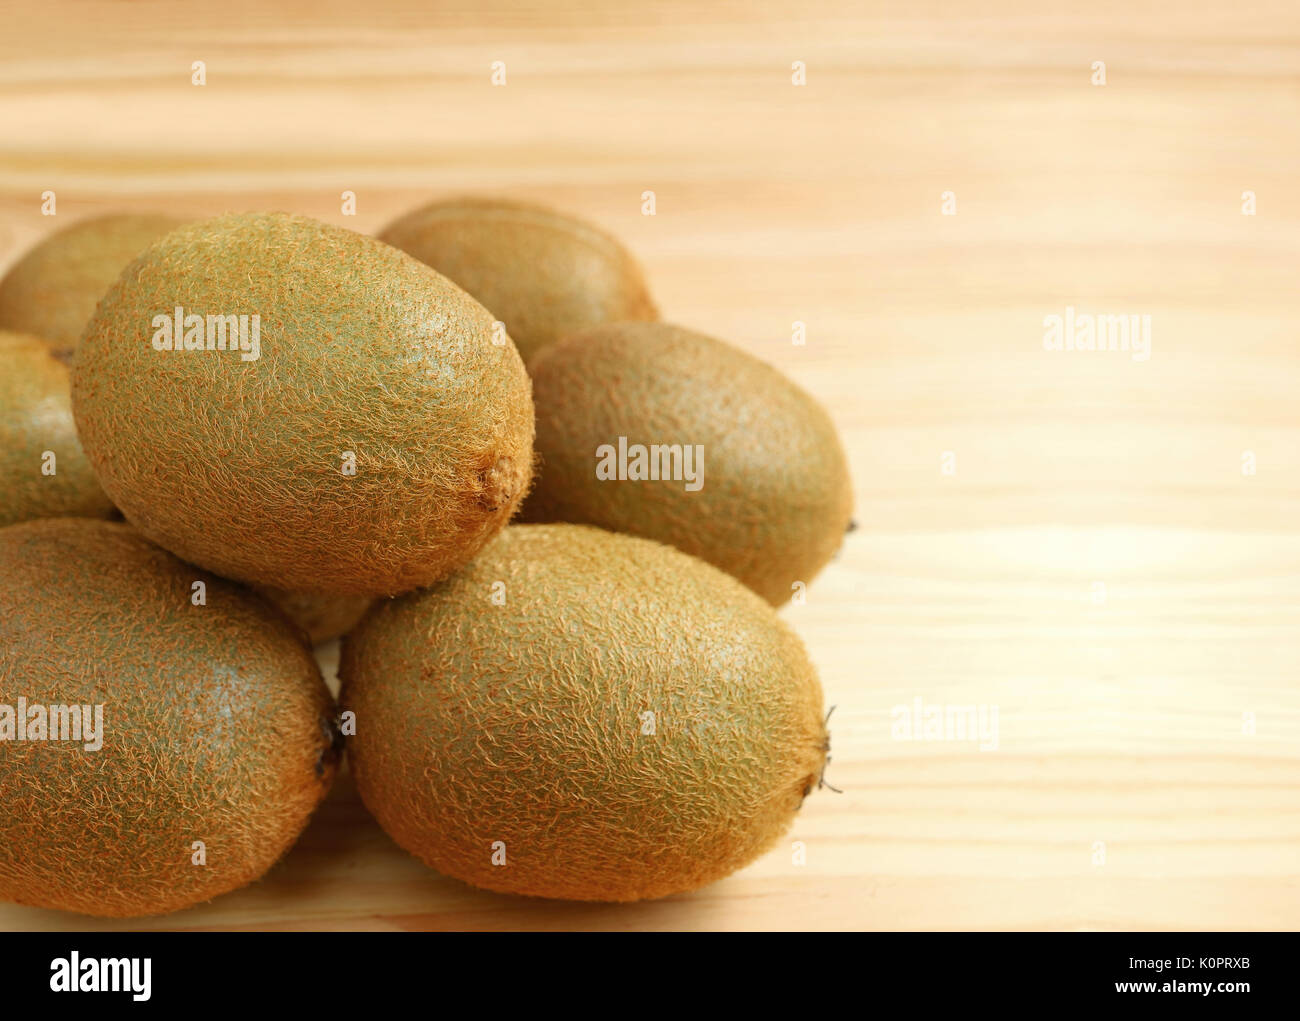 Pile of Fresh Ripe Kiwi Fruits on Wooden Table, with Selective Focus and Free Space for Design and Text - Stock Image